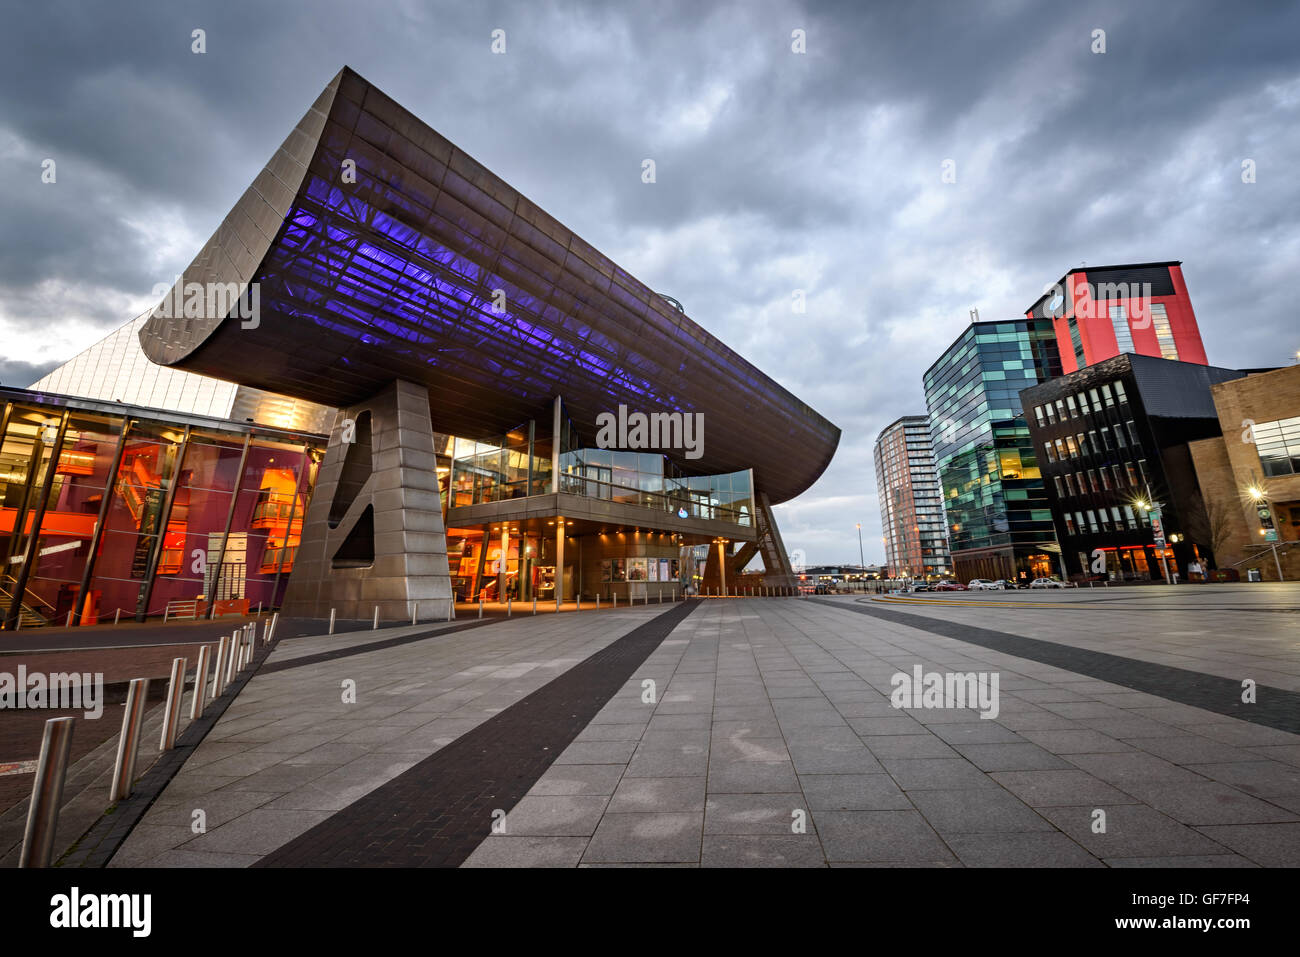 The Lowry is a theatre and gallery complex situated on Pier 8 at Salford Quays, in Salford, Greater Manchester, - Stock Image